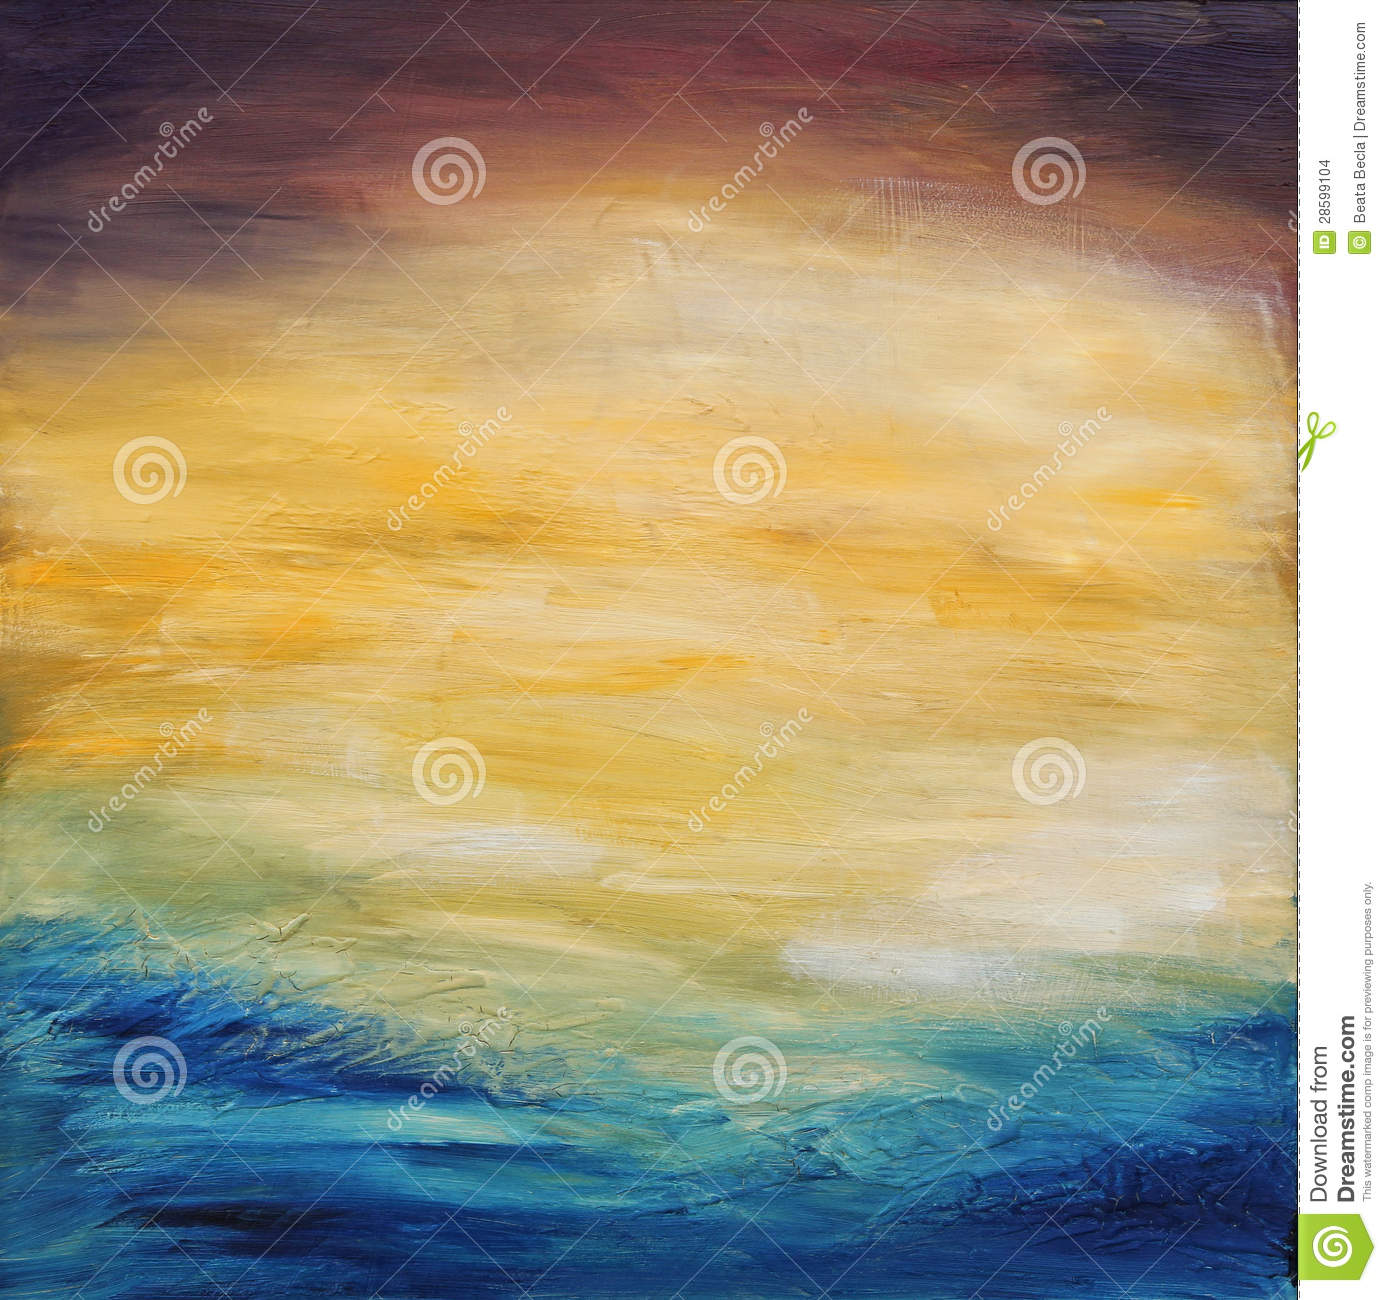 Abstract water sunset. Oil painting on canvas.